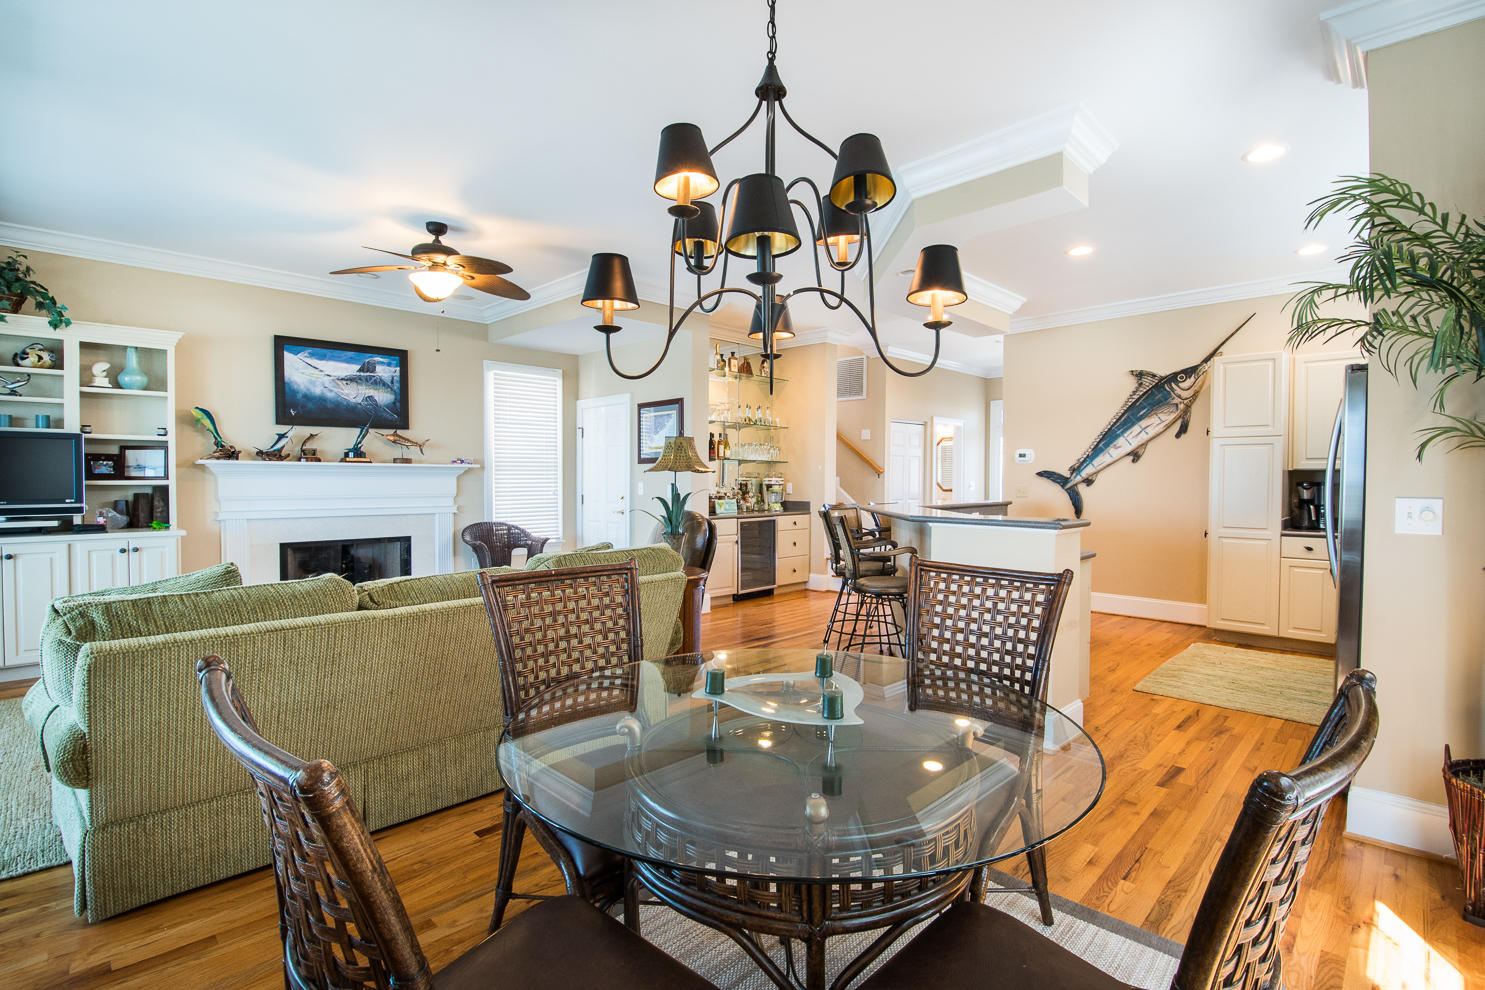 Tolers Cove Homes For Sale - B-4 & B-5 Tolers Cove Marina 70ft + Home, Mount Pleasant, SC - 32